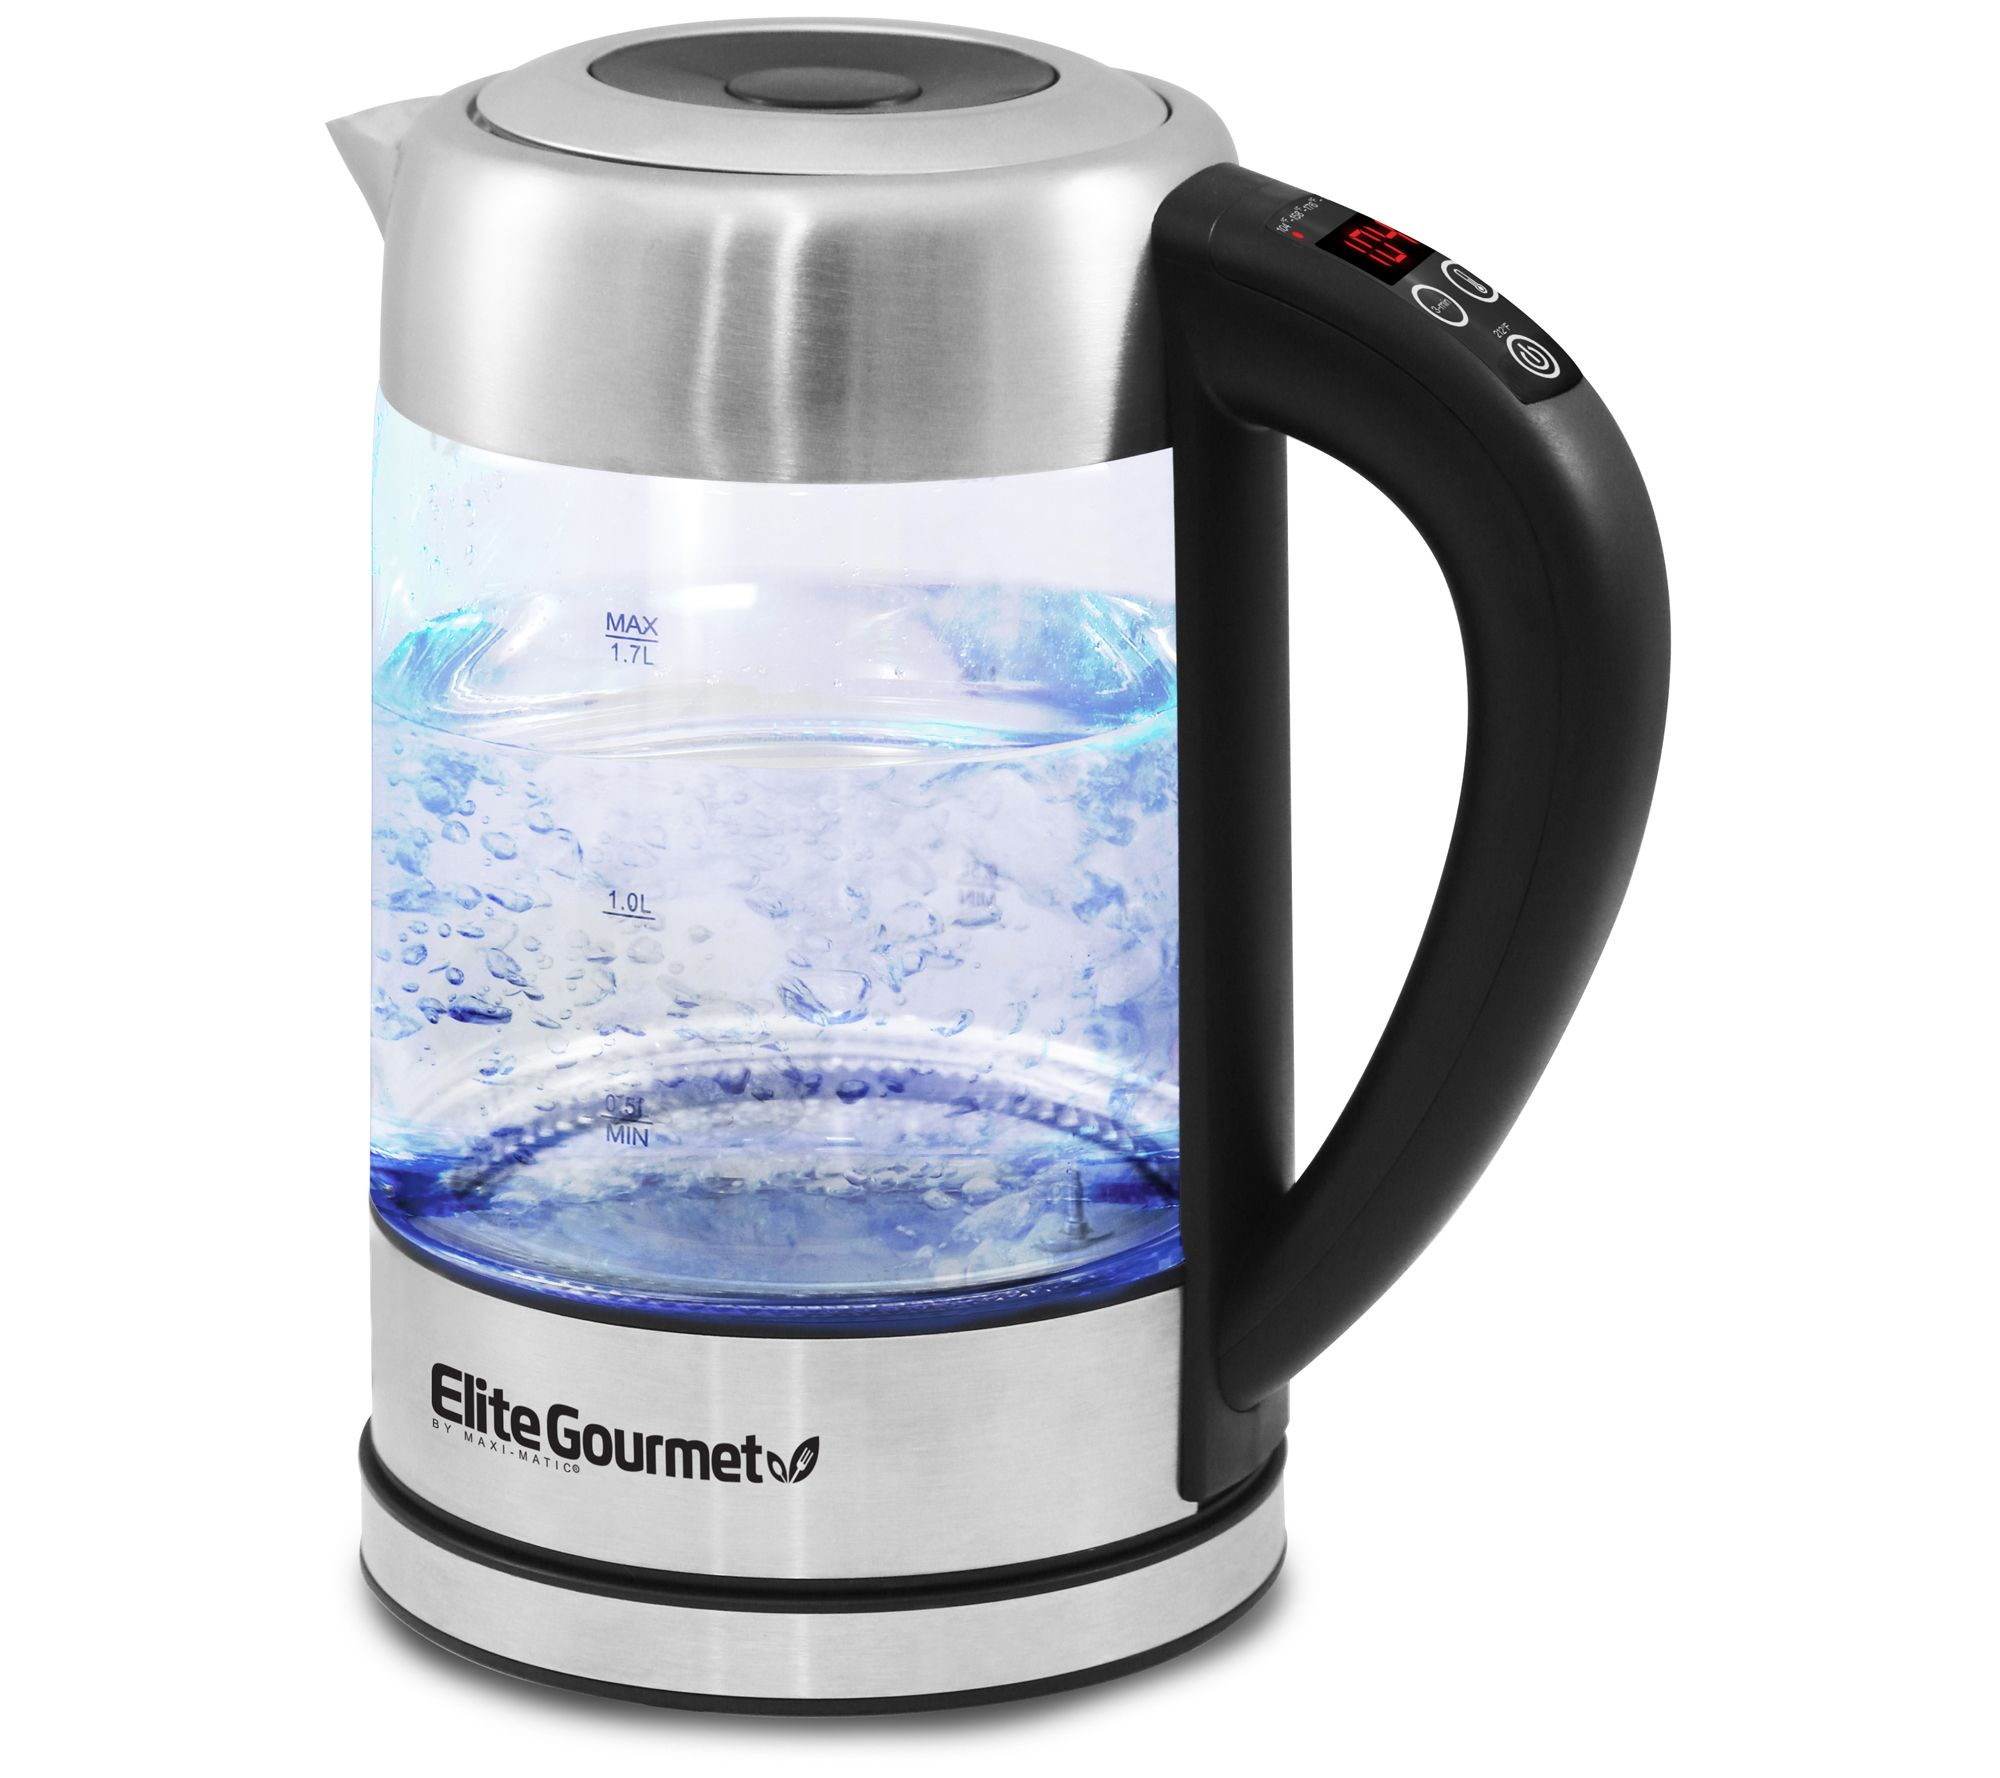 Elite Gourmet 1 7l Electric Programmable Kettle 7 2 Cups Qvc Com